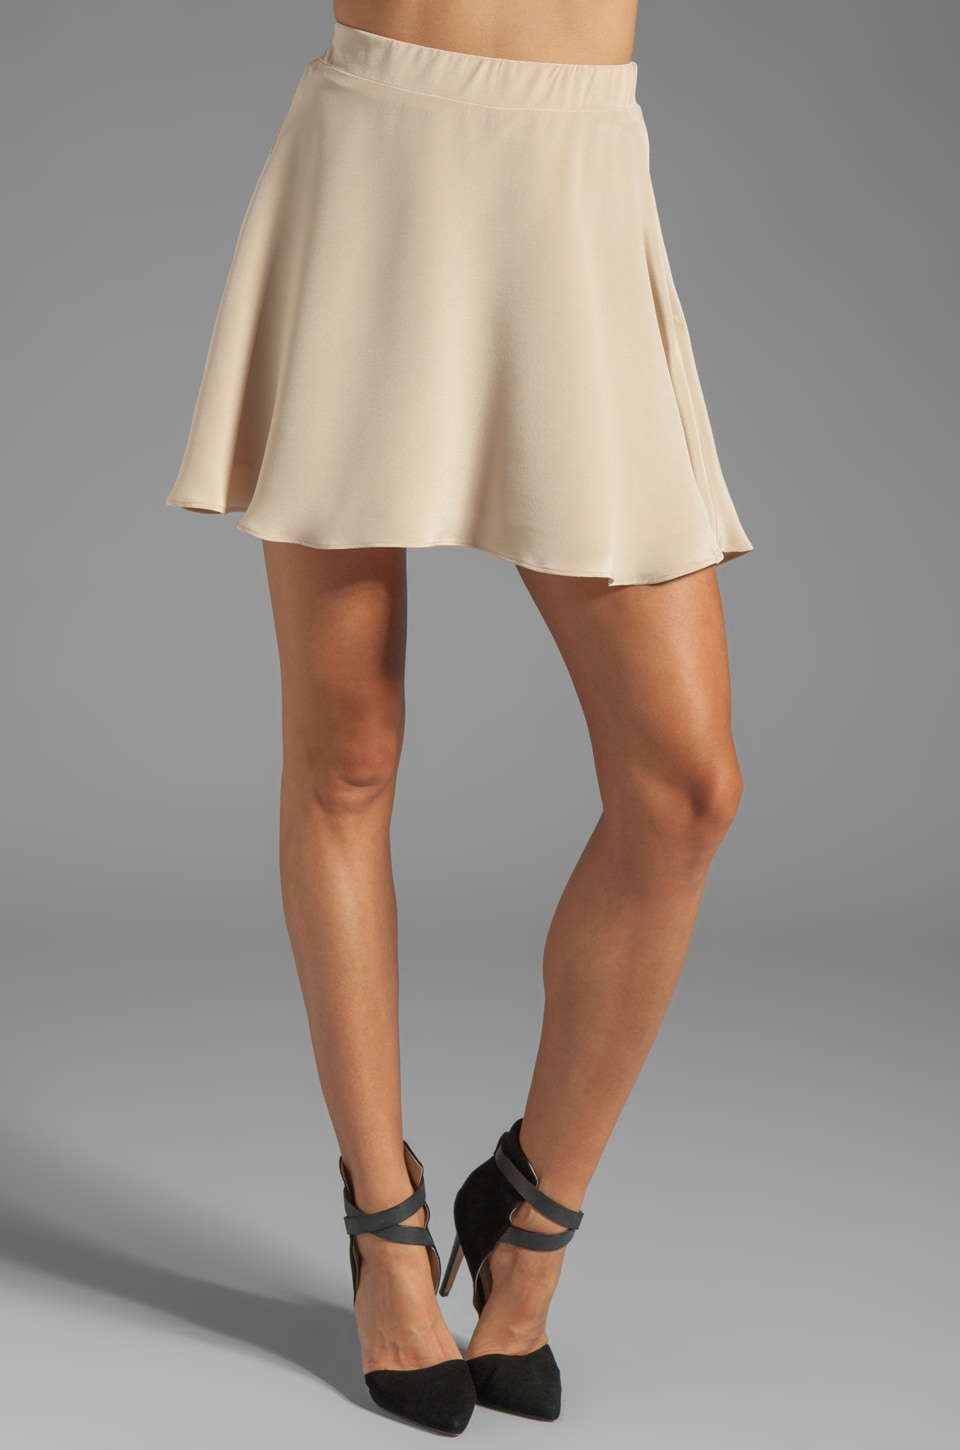 Naven Designer Circle Skirt in Tan